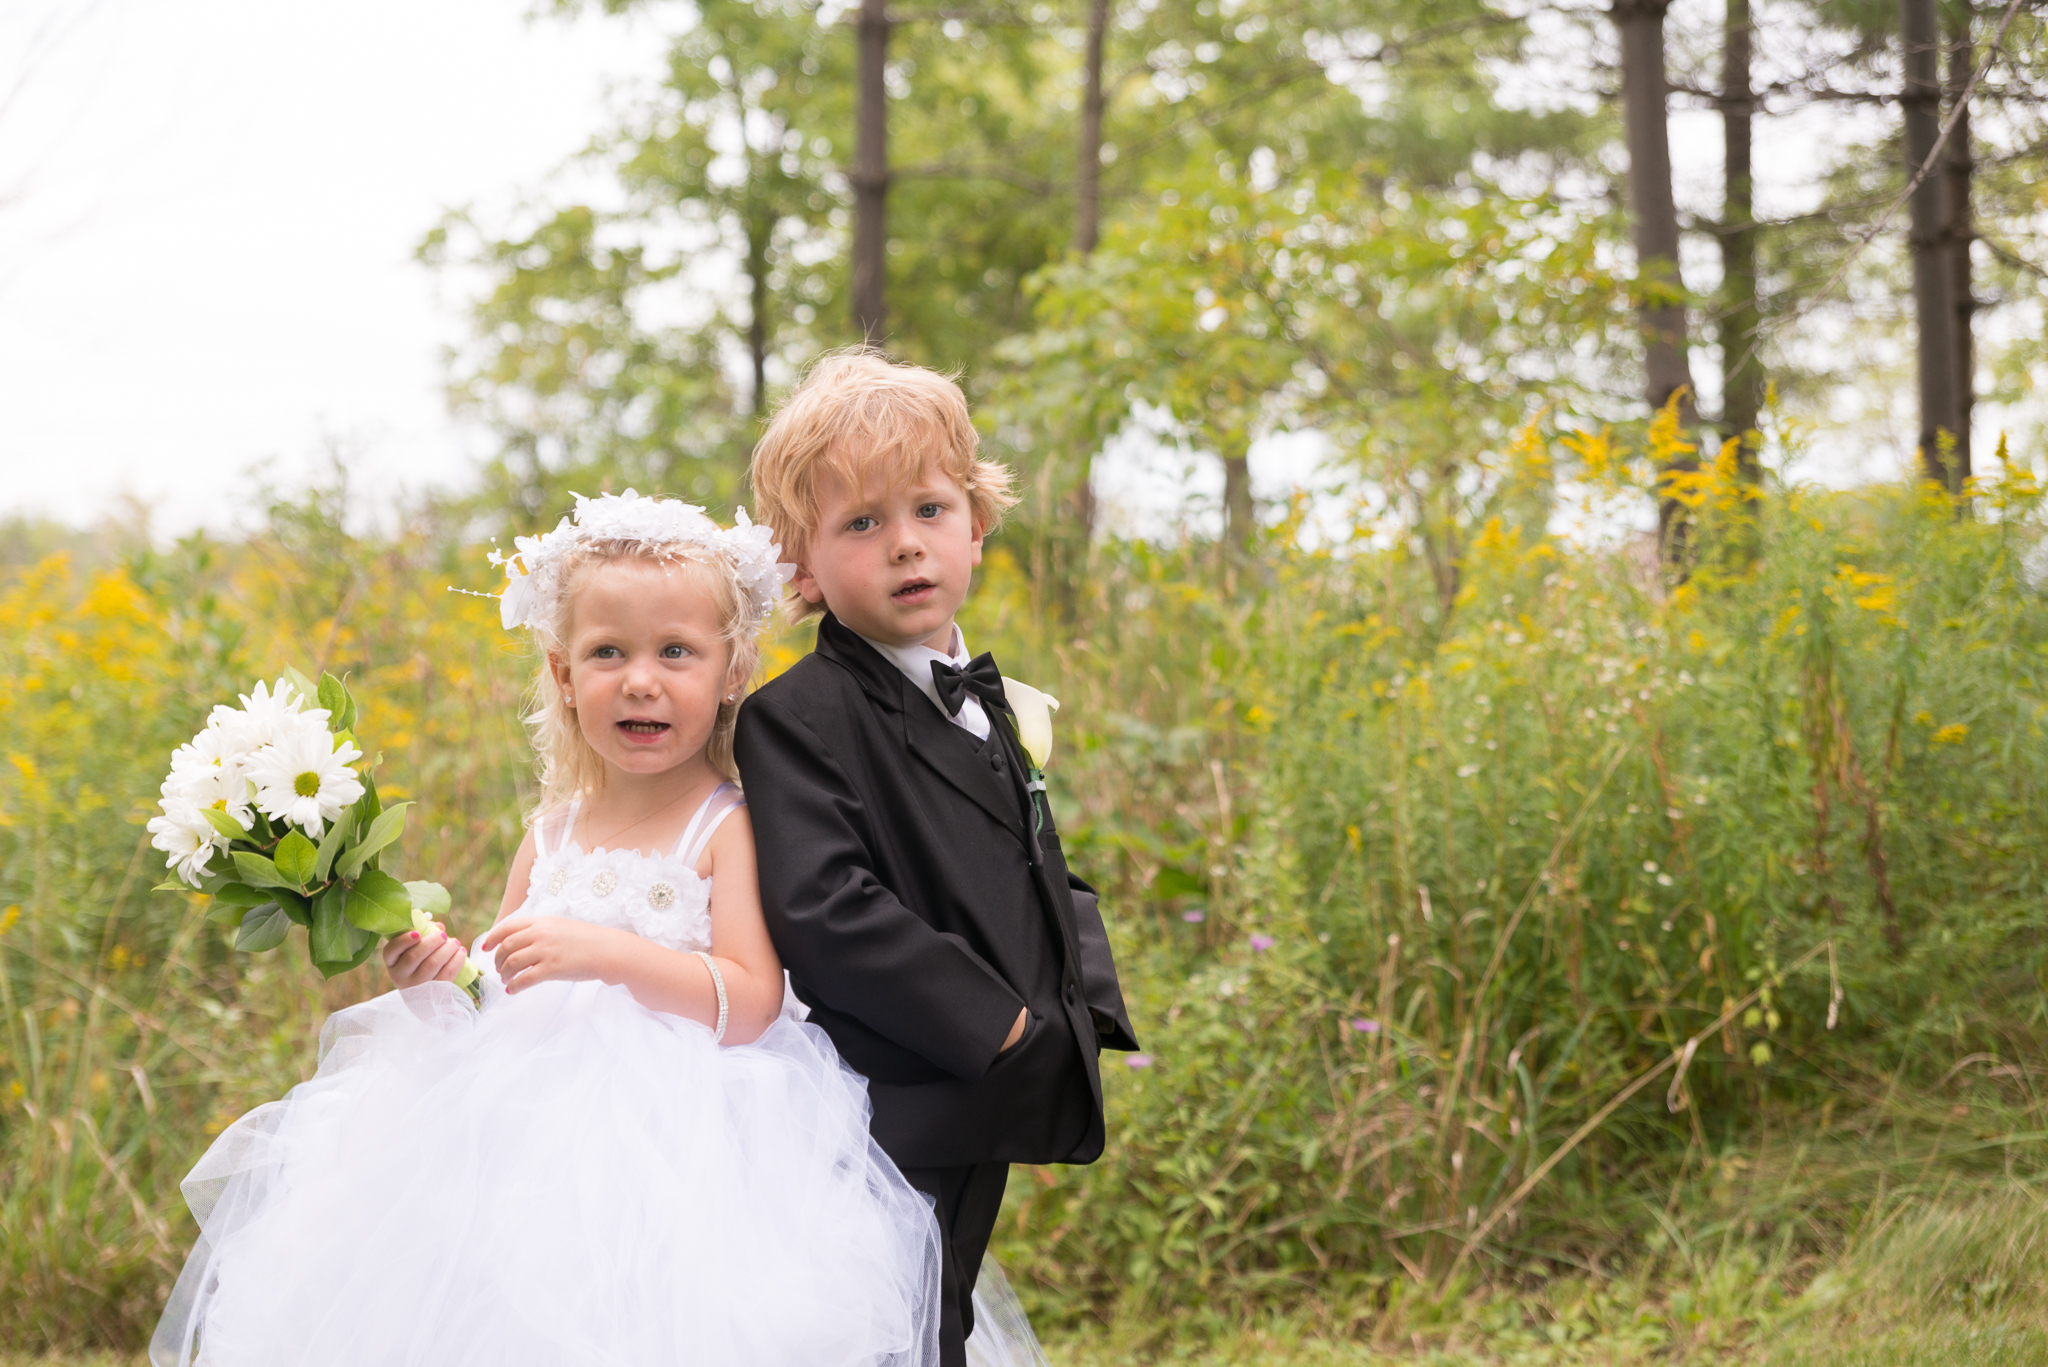 Strathroy Wedding Videographer